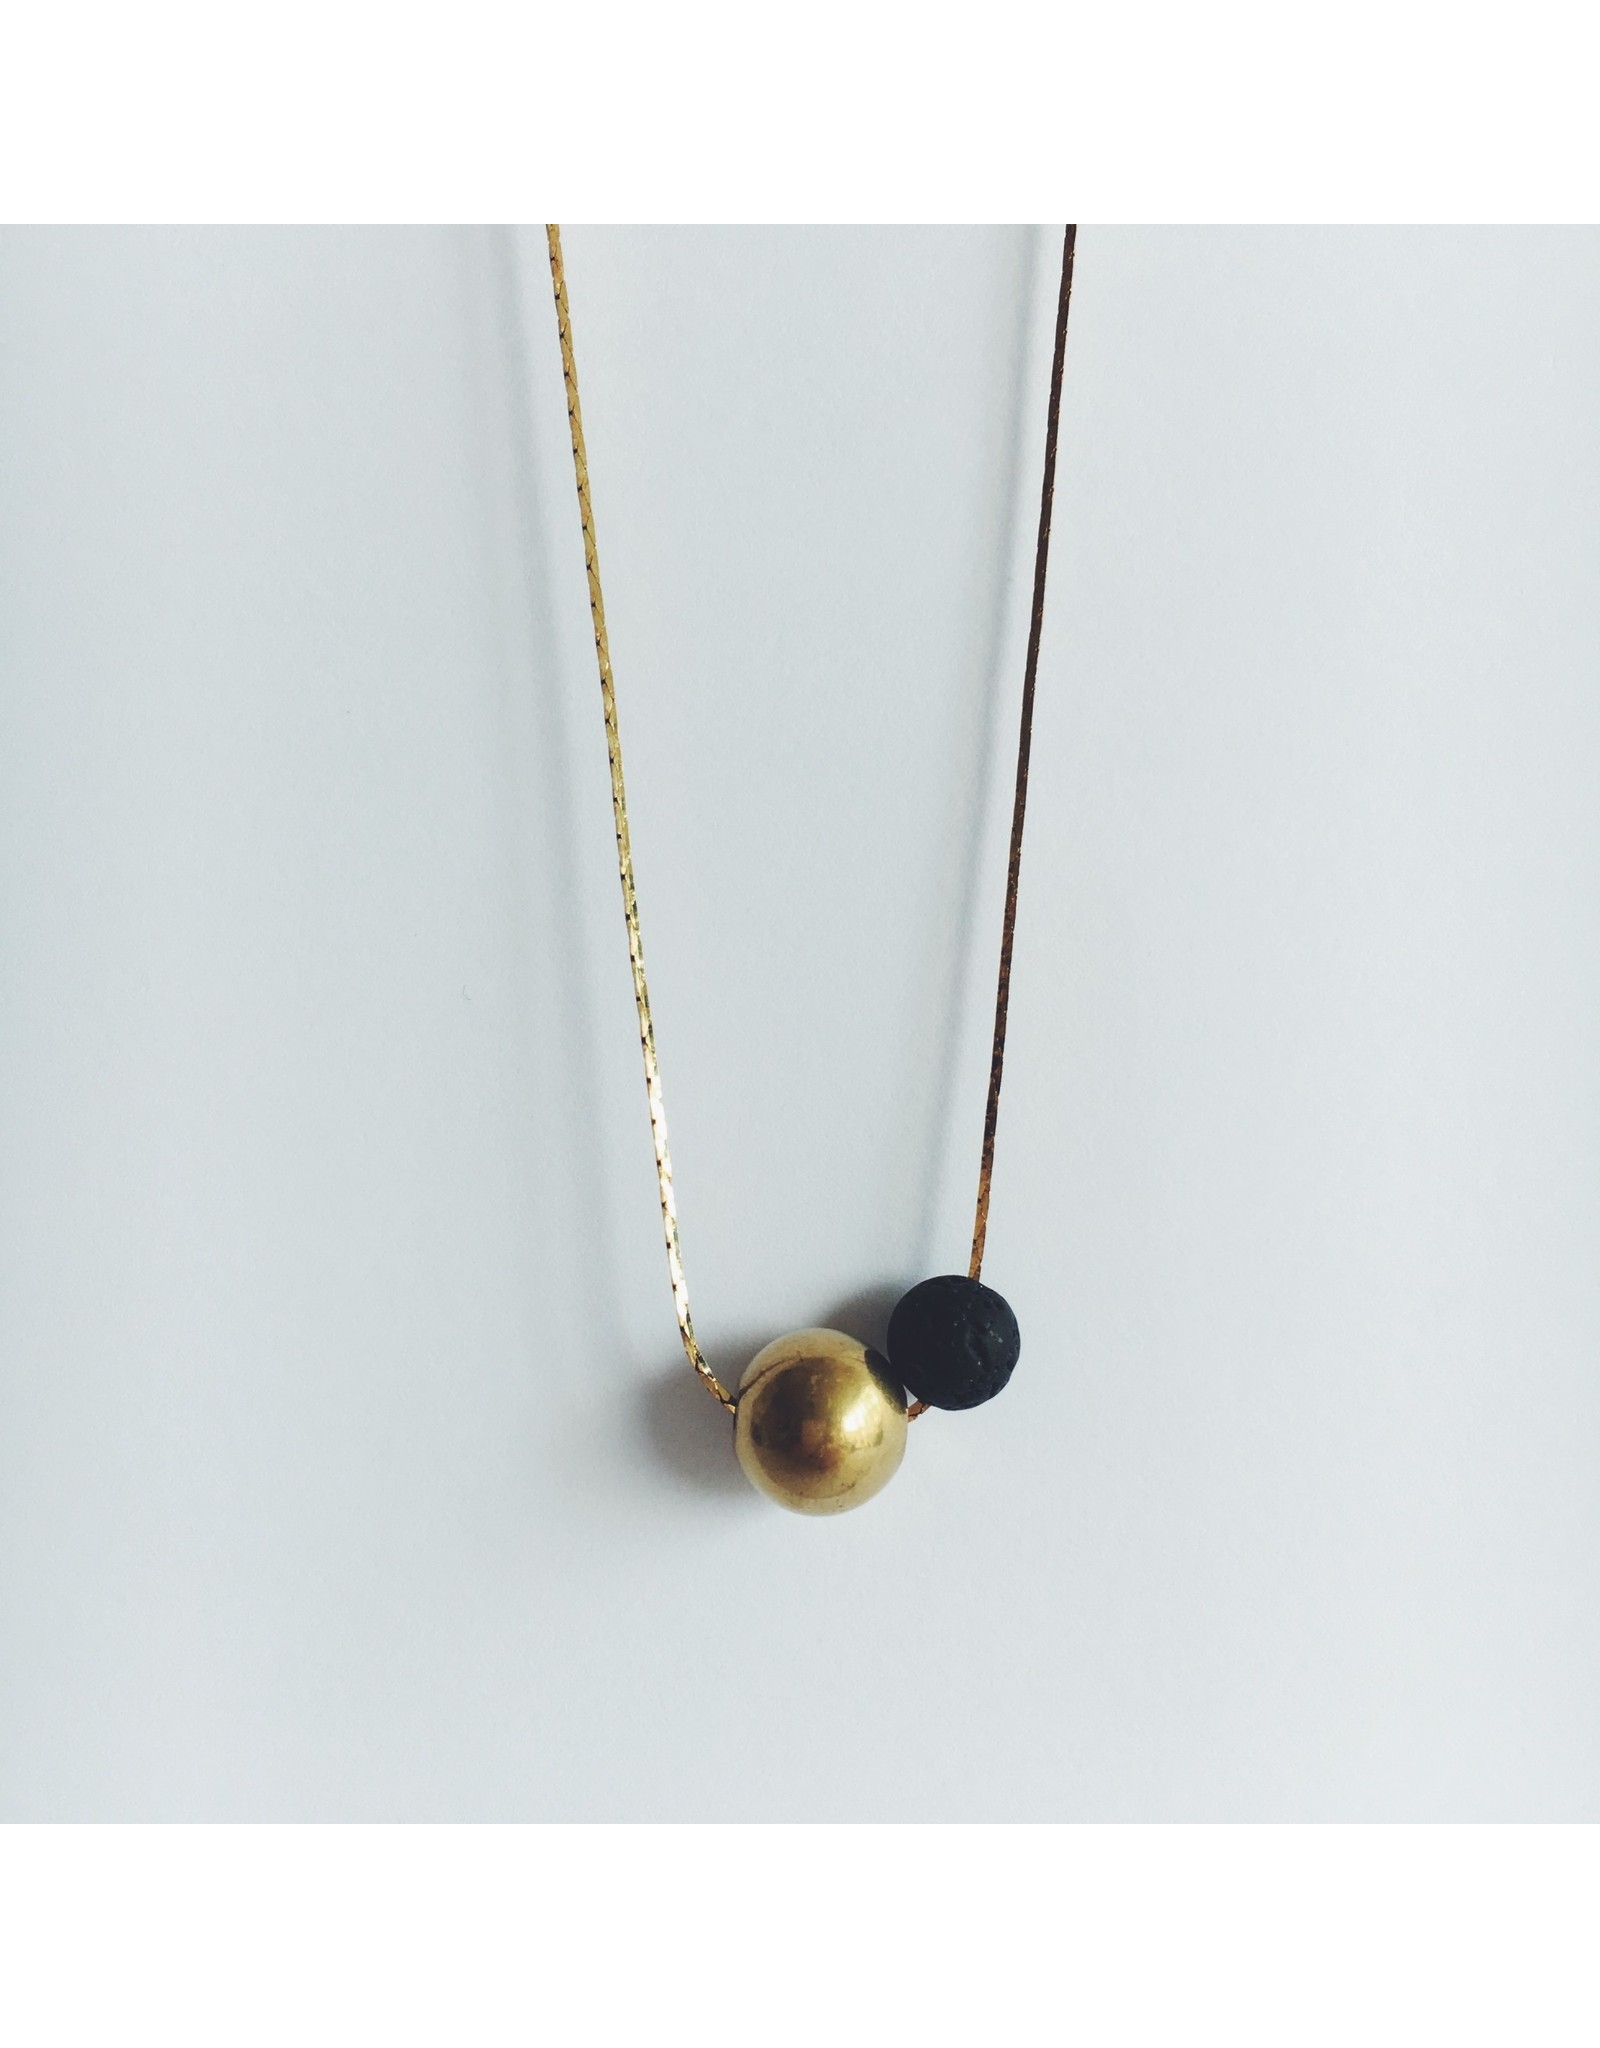 Brass Bead and Black Lava Bead Necklace